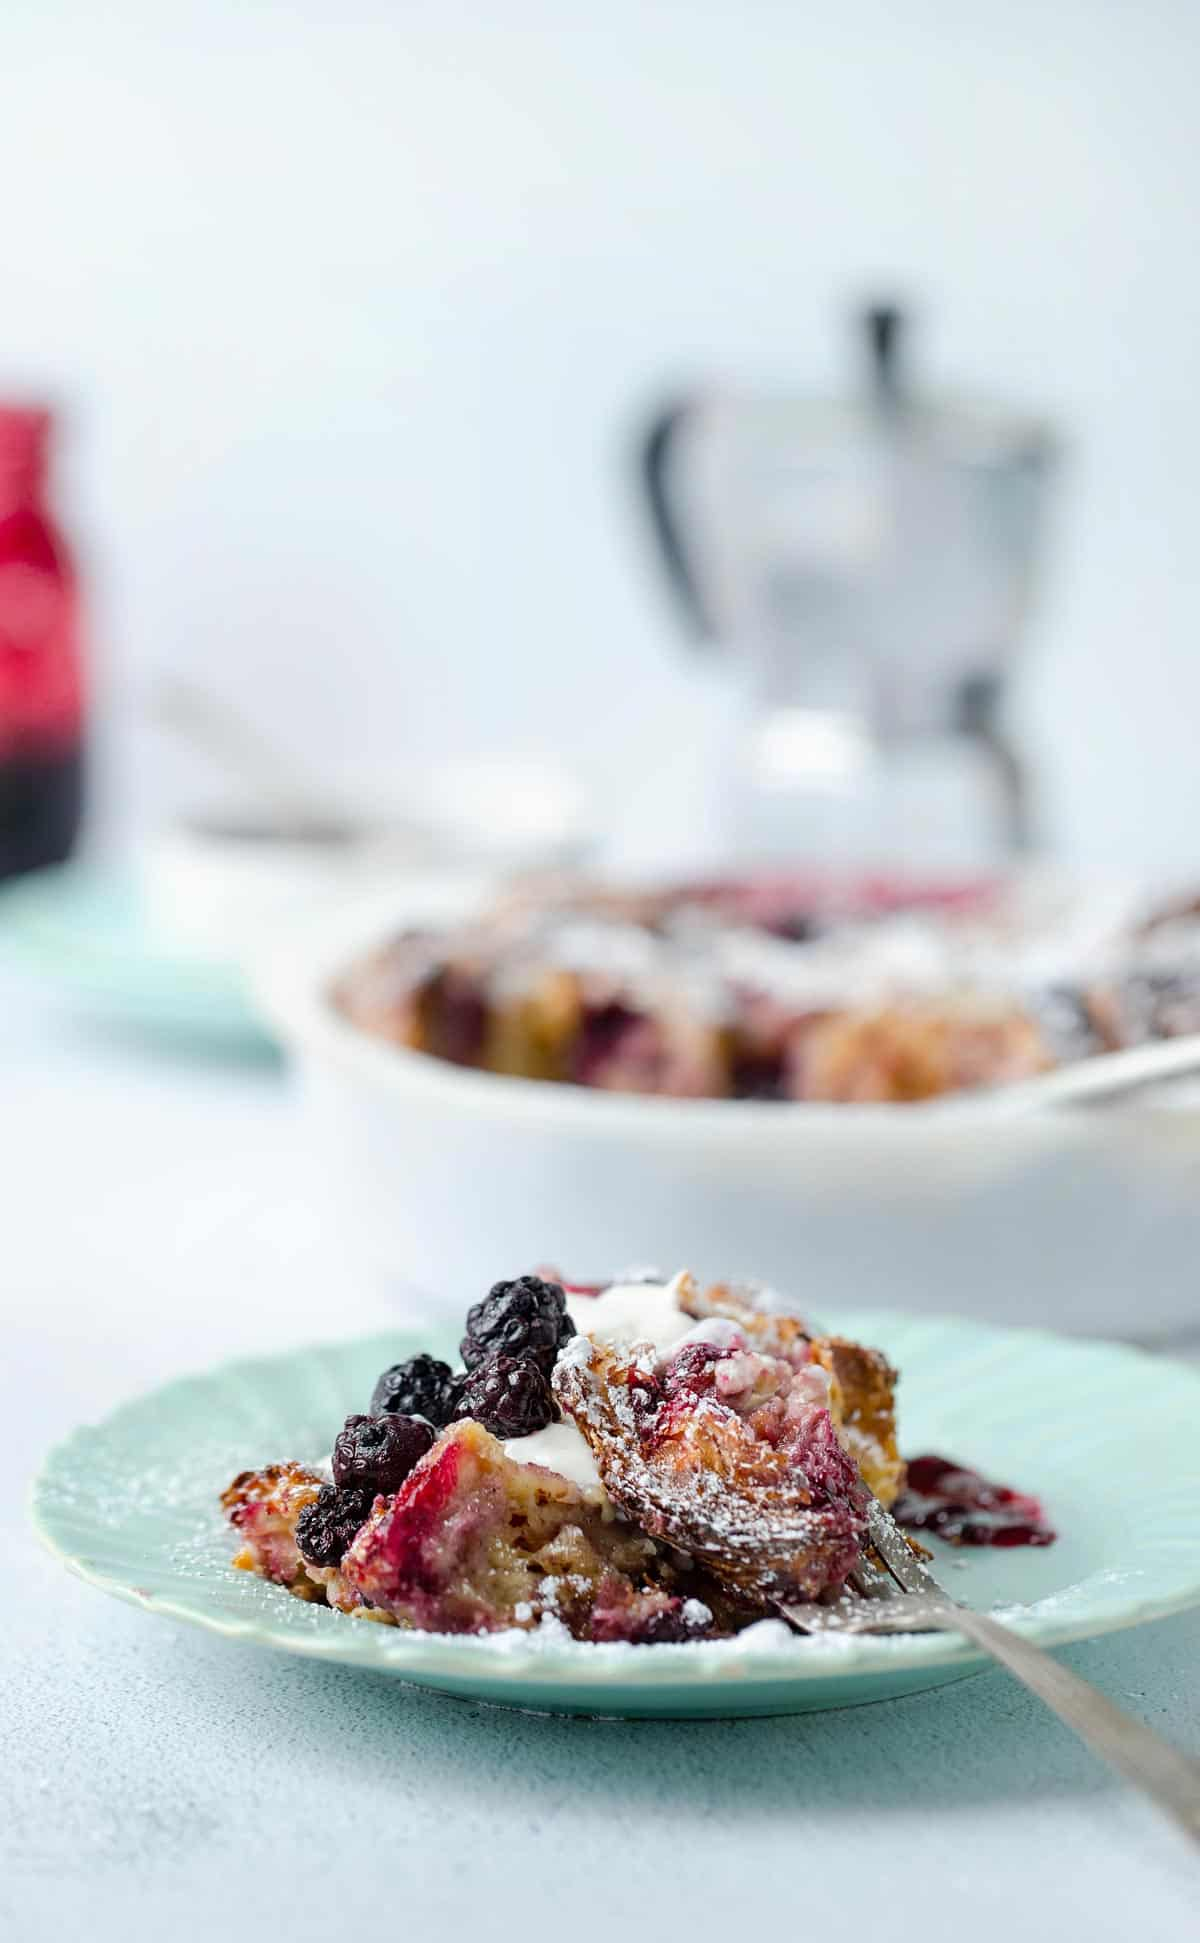 What to serve with Berries and Cream Croissant French Toast Bake